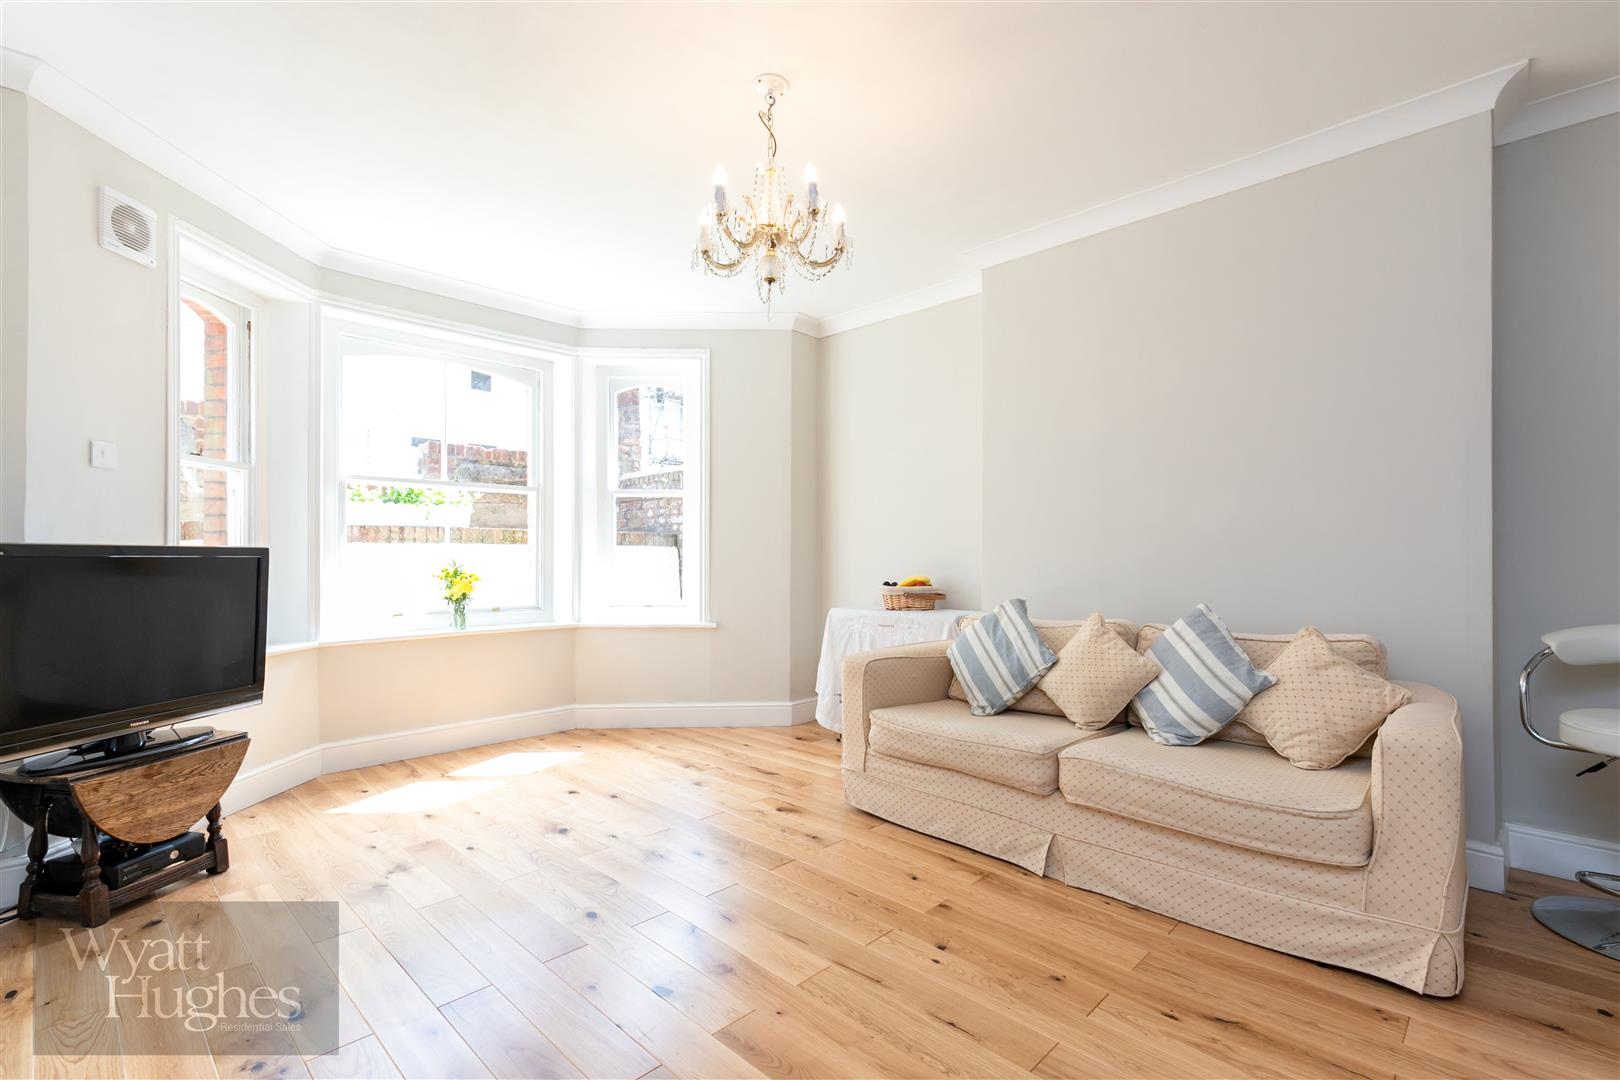 2 bed flat for sale in Kenilworth Road, St. Leonards-On-Sea, TN38